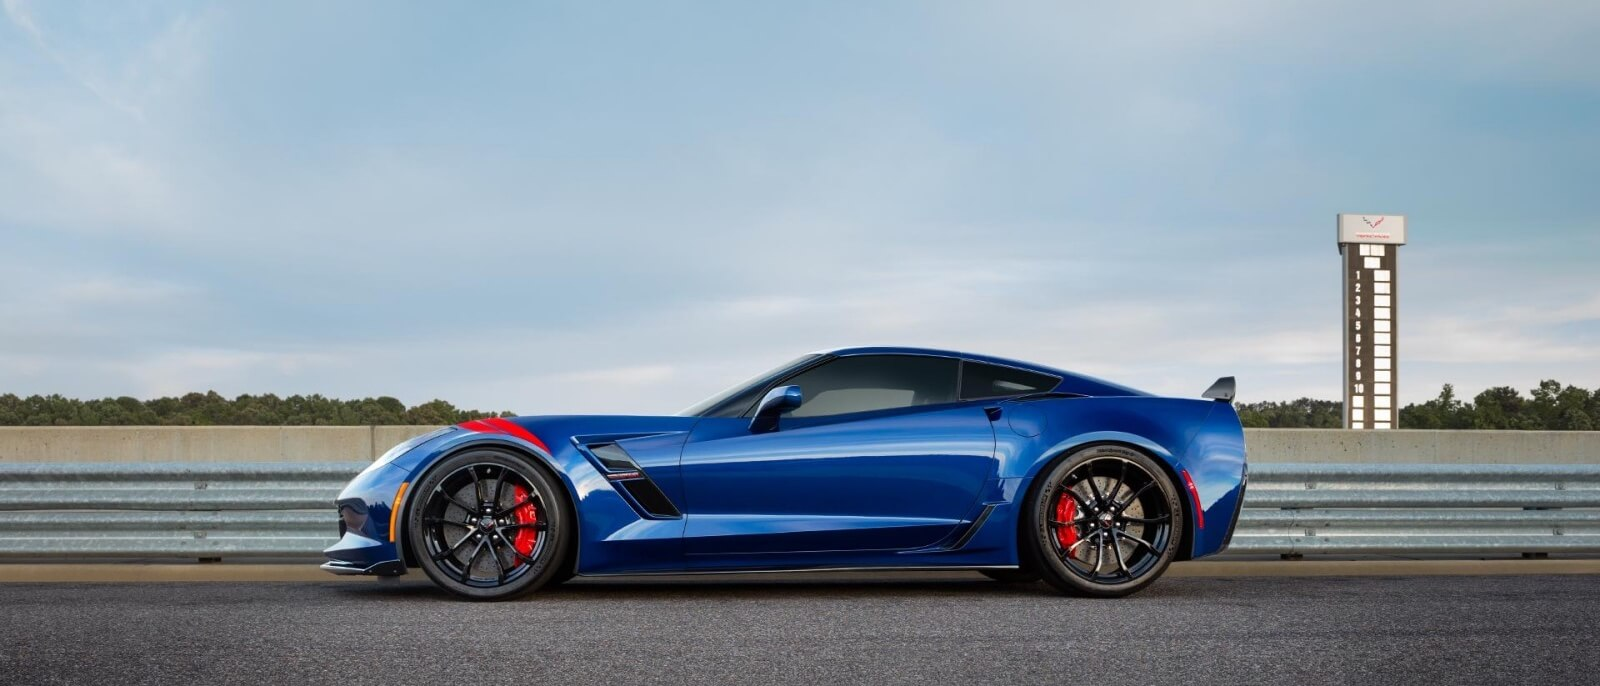 2017 Chevrolet Corvette Grand Sport blue exterior side view